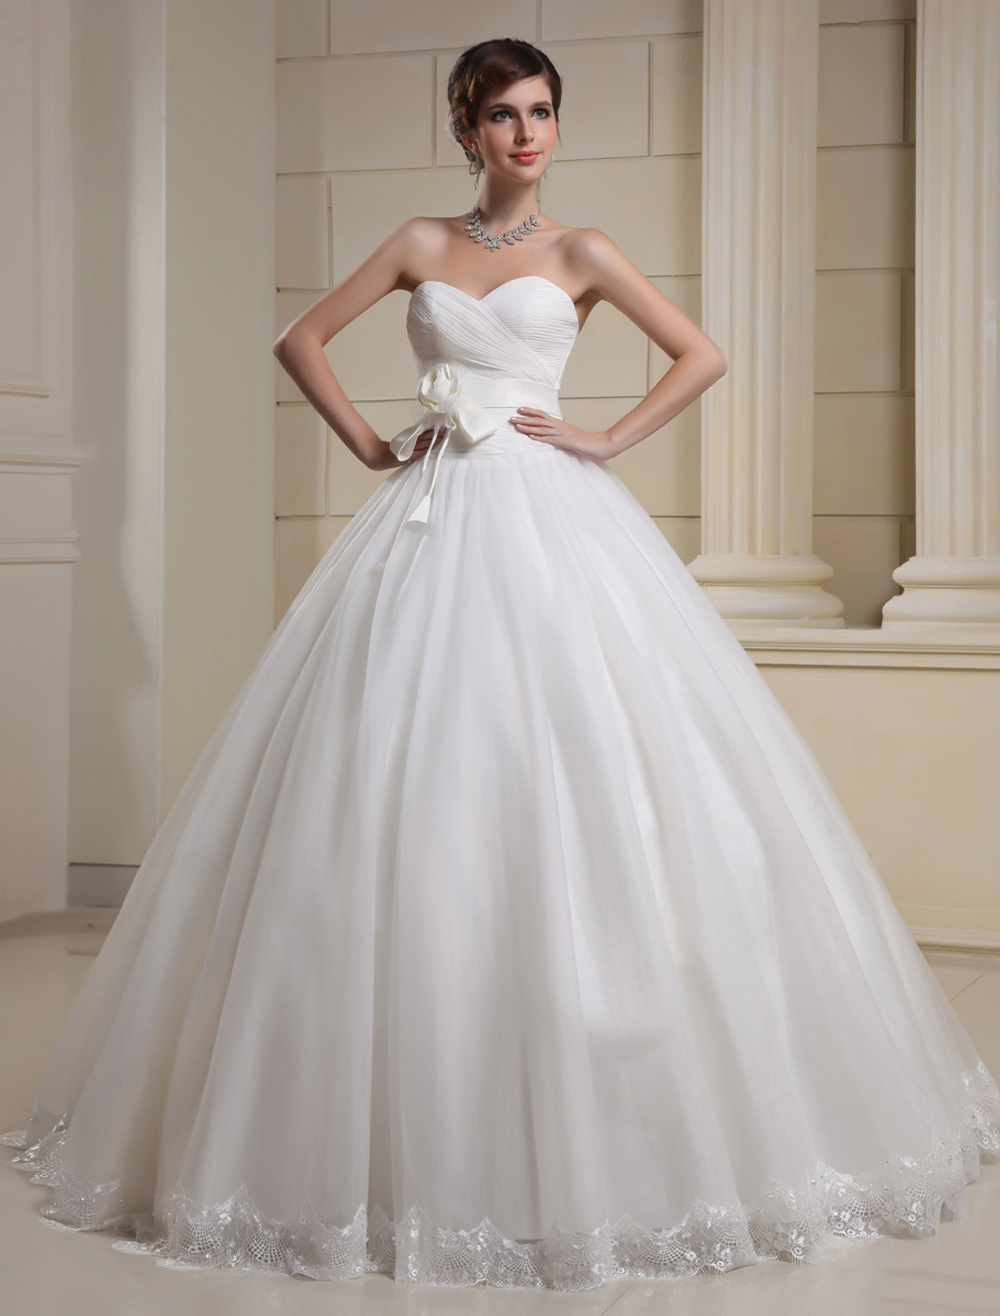 White Ball Gown Sweetheart Floral Applique Tulle Bridal Wedding Dress